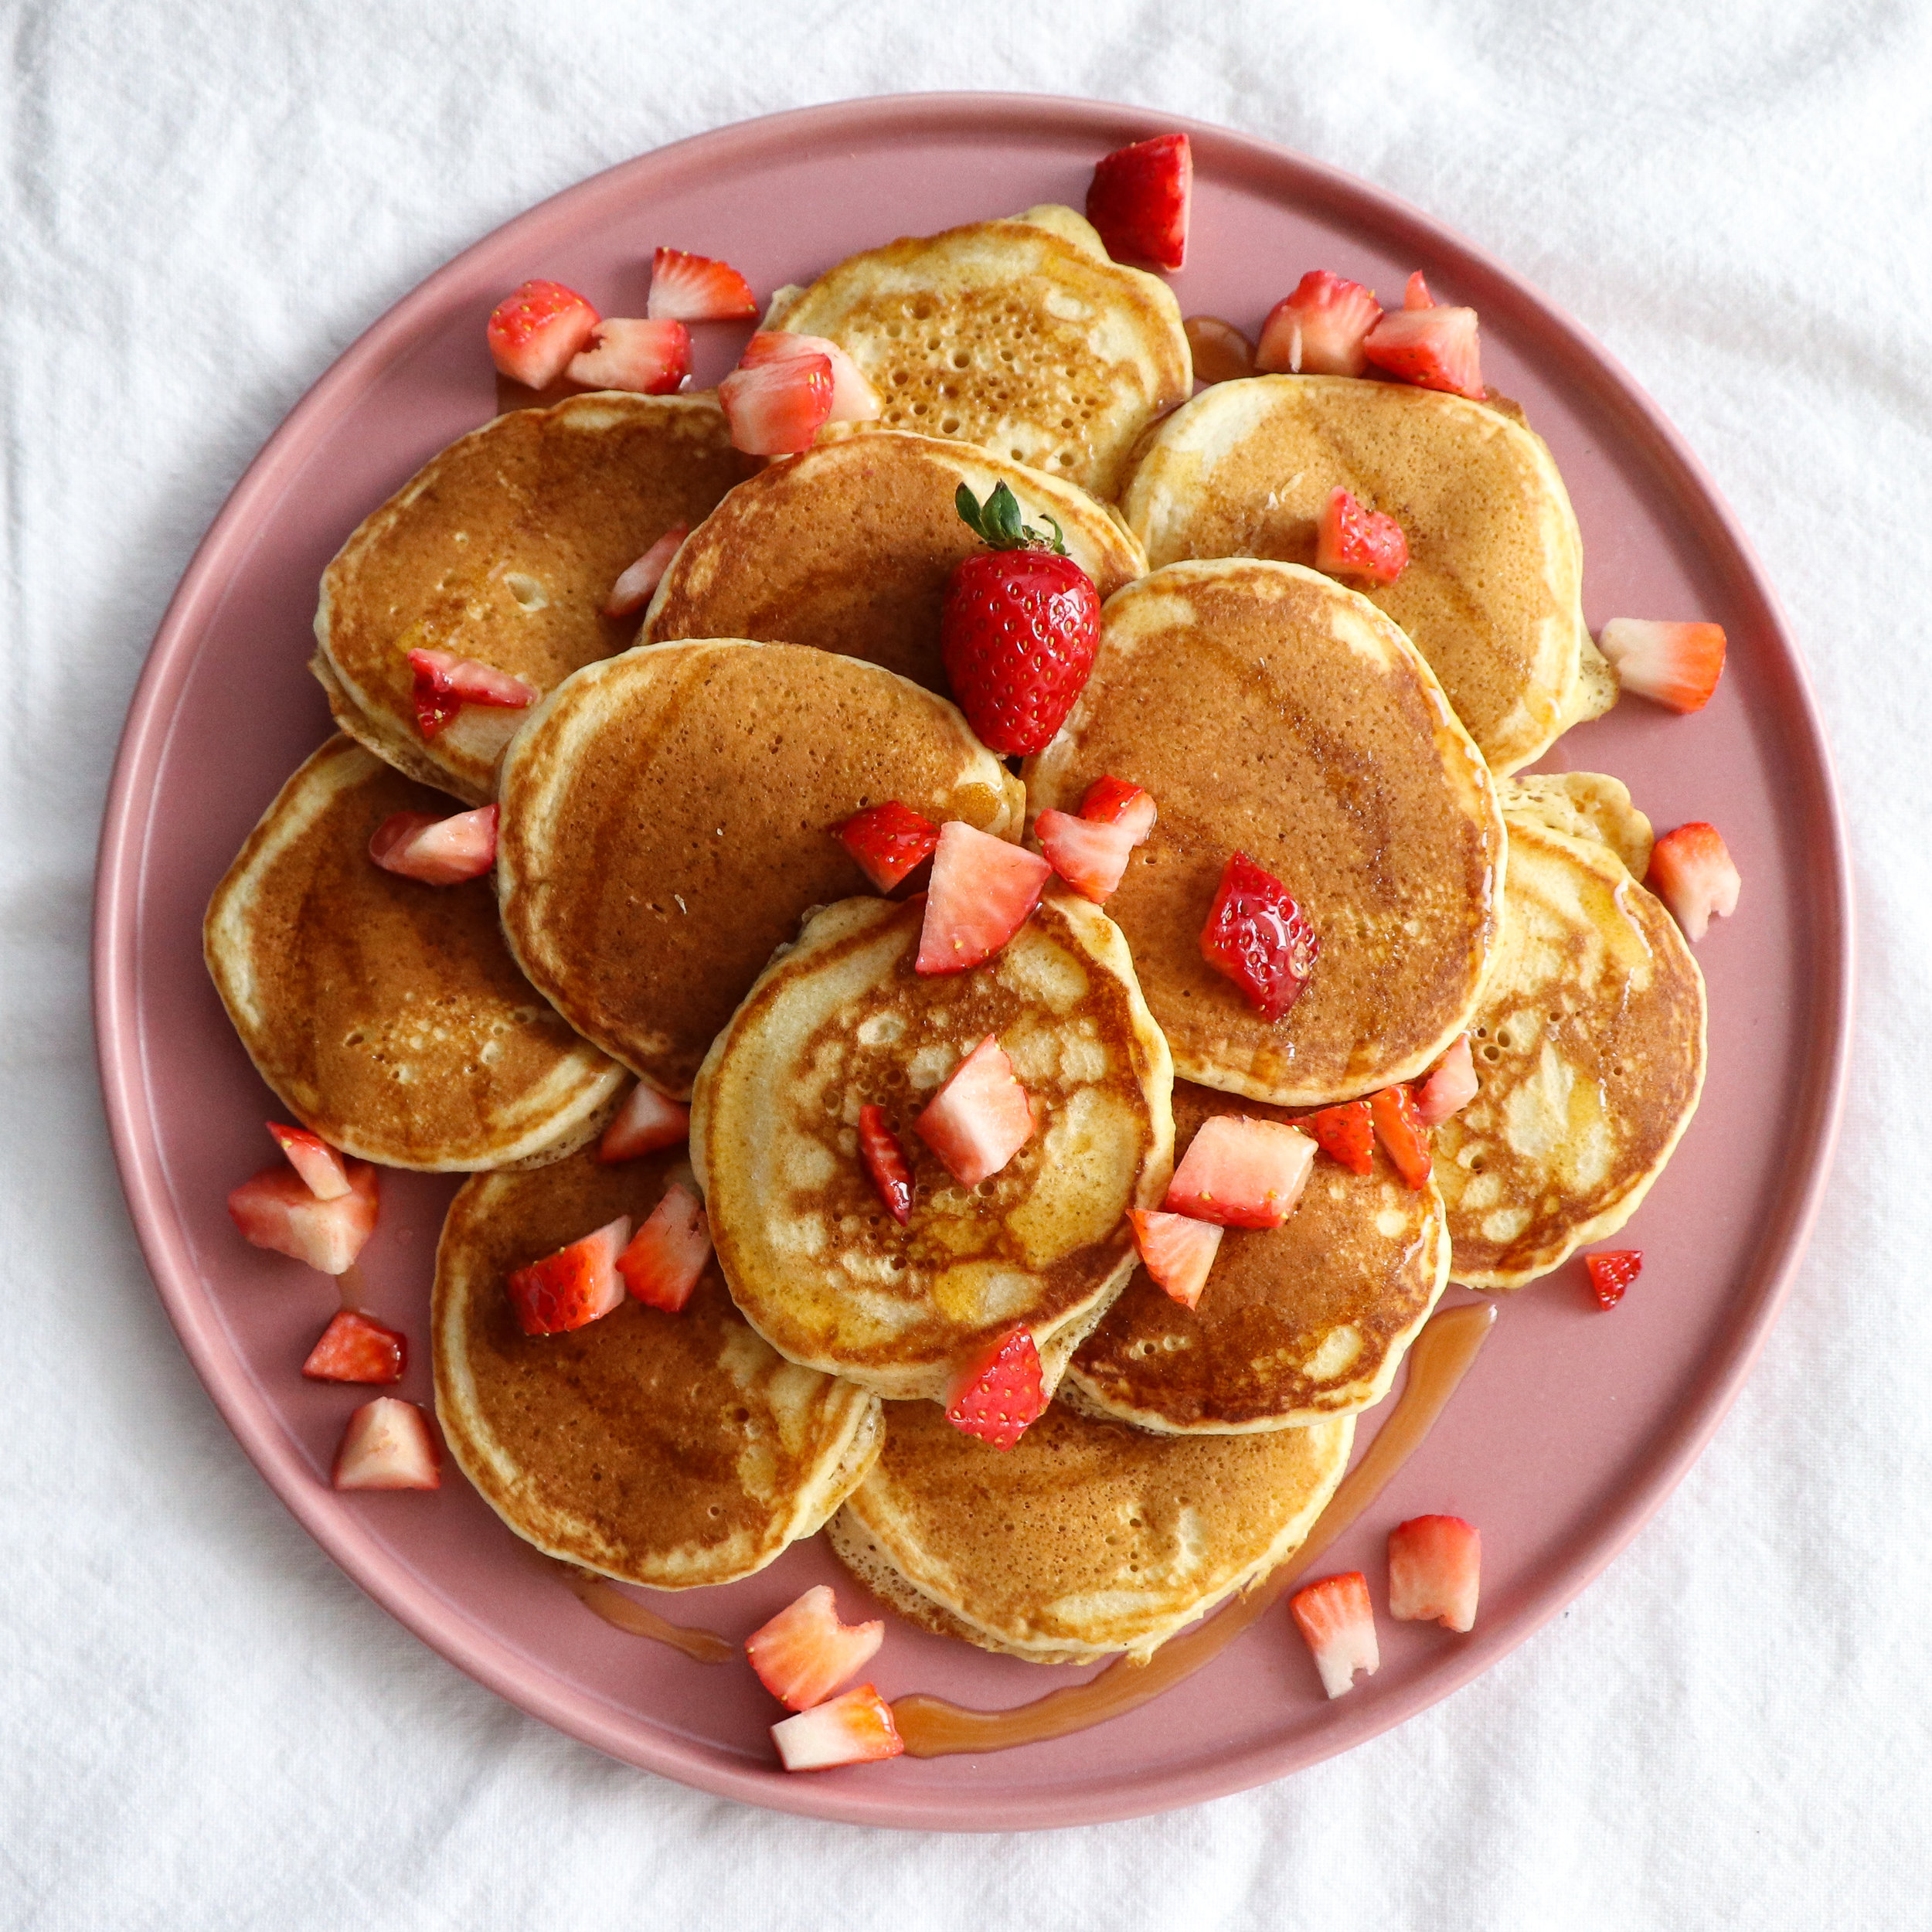 Pancakes with strawberries.jpg